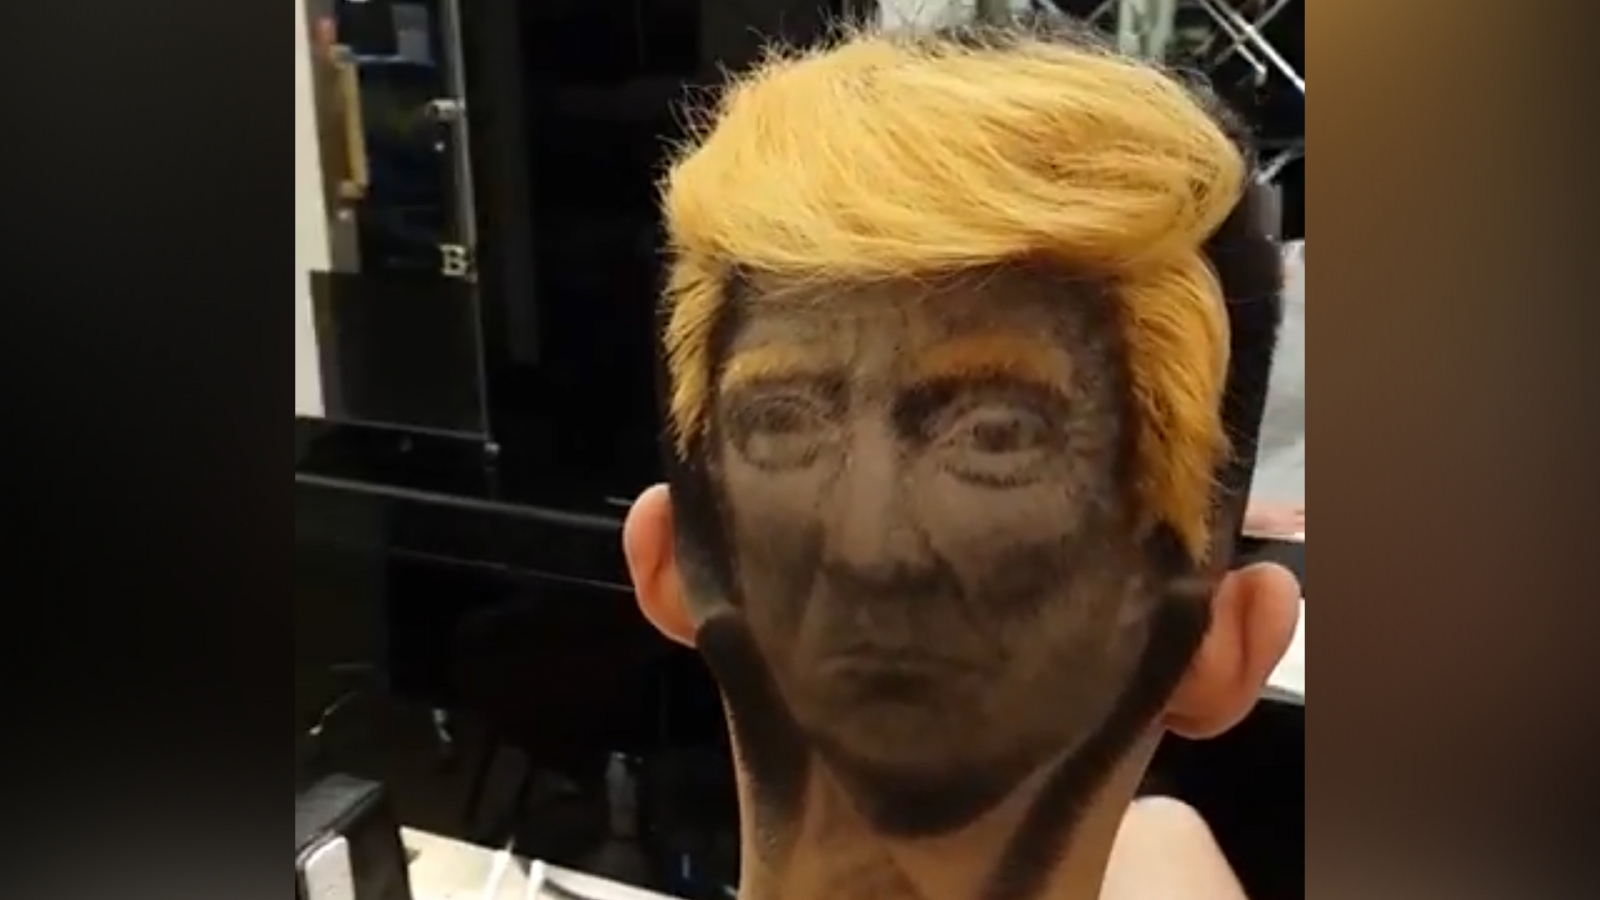 You can now get a Donald Trump 'hair tattoo'